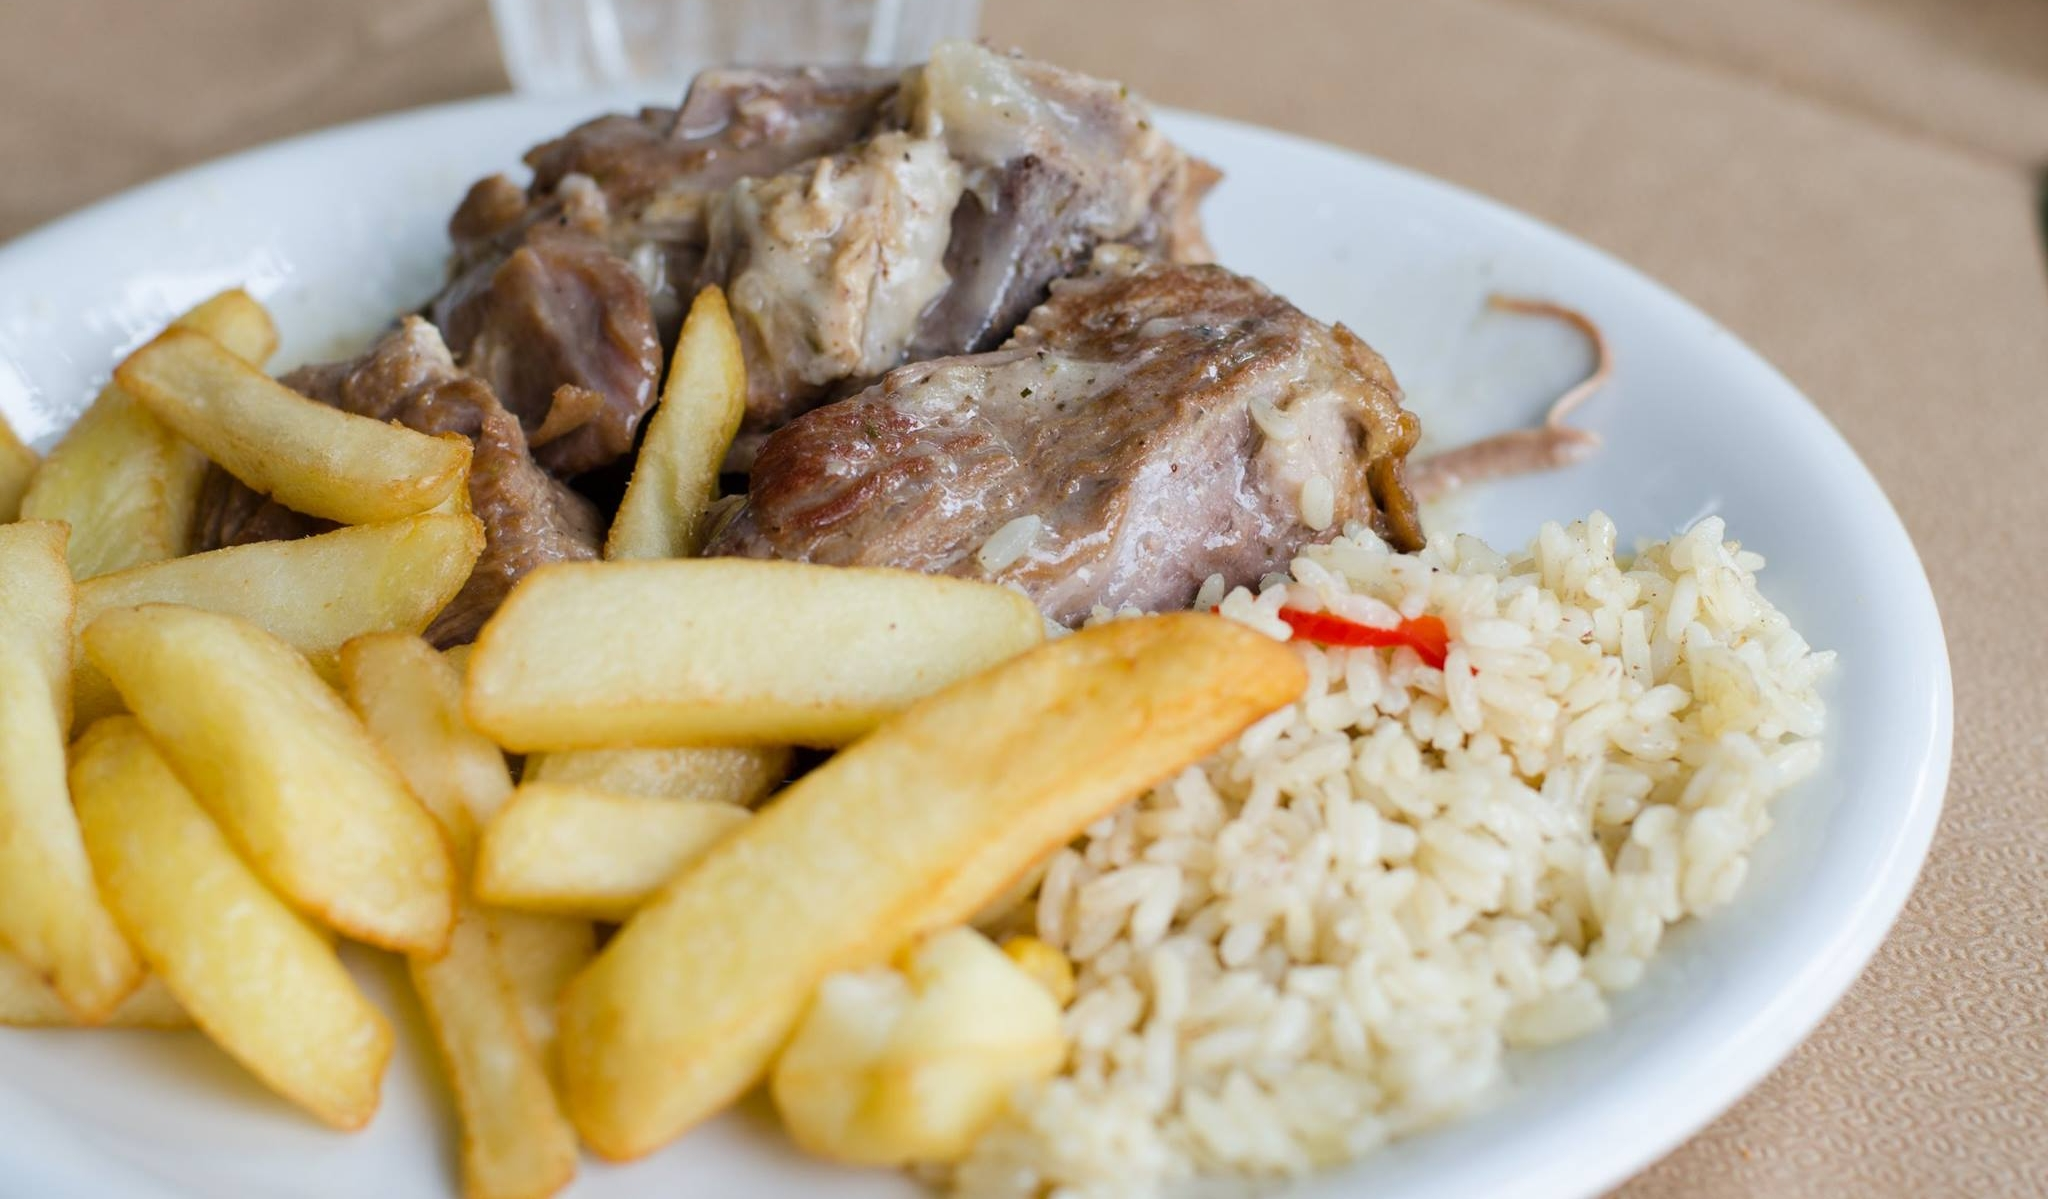 Lamb with Rice and fresh cut fries